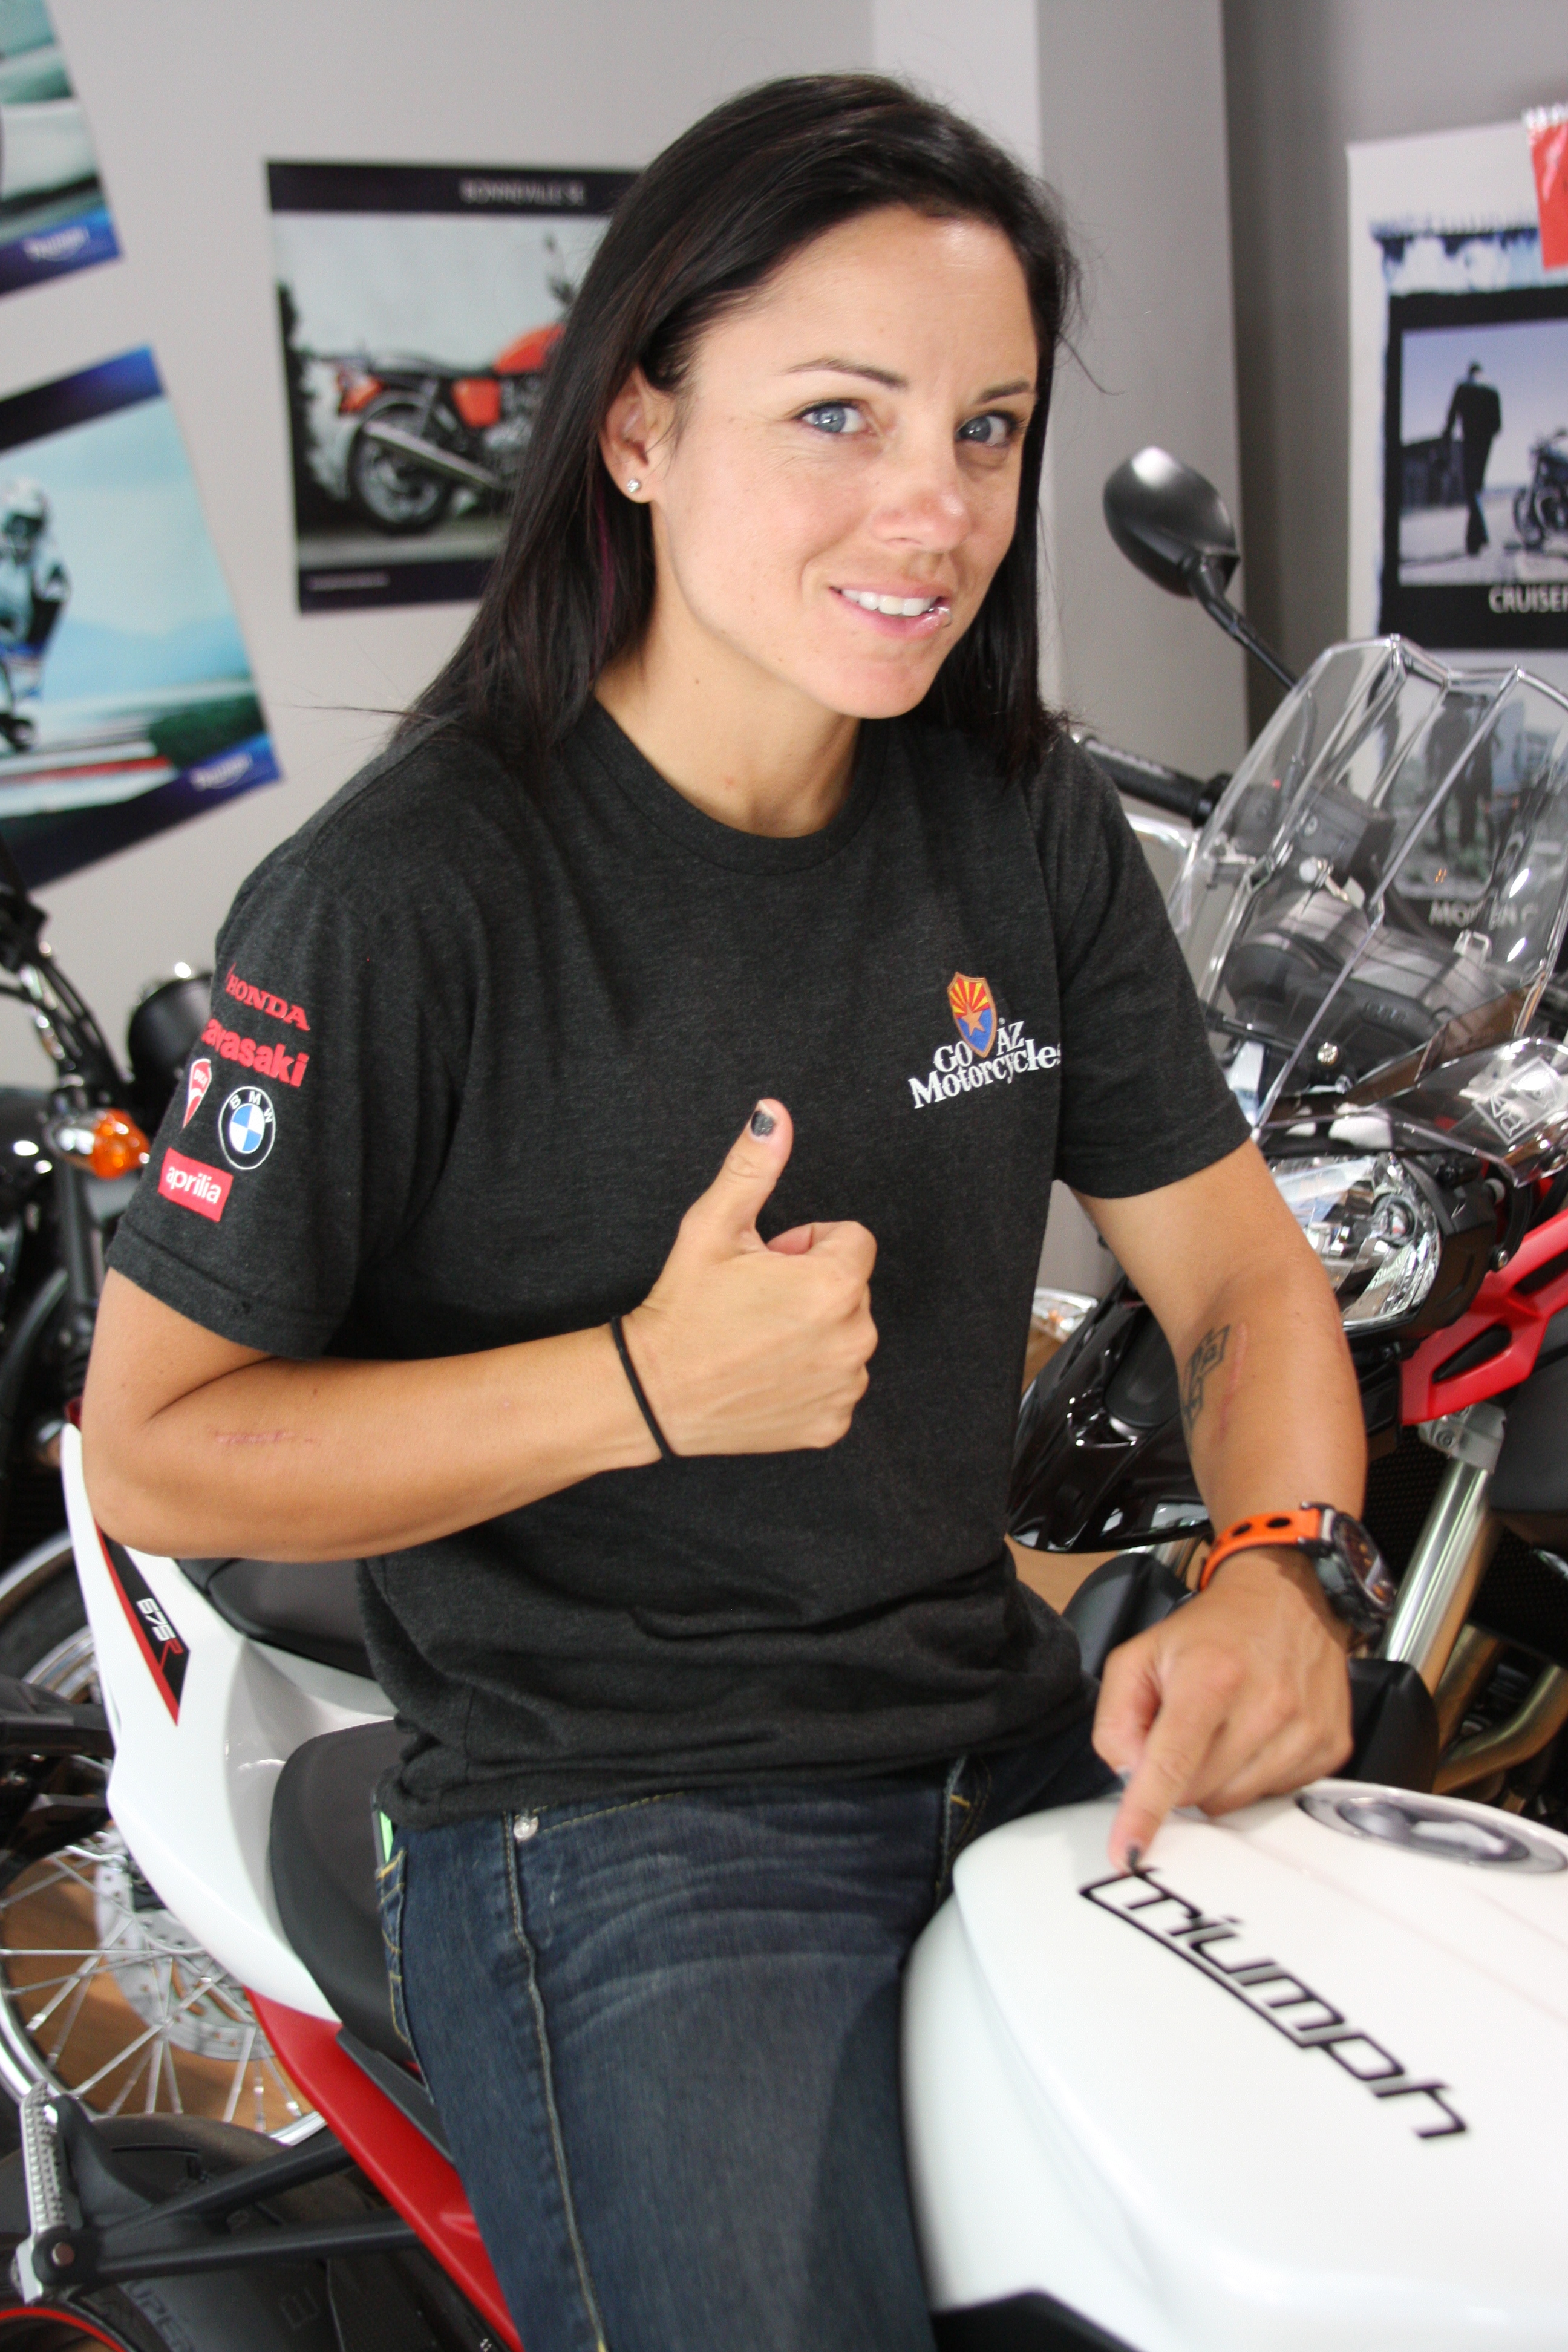 Mazda Raceway Laguna Seca >> MELISSA PARIS RETURNS TO RACE IN THE UNITED STATES WITH TRIUMPH MOTORCYCLES AT MAZDA RACEWAY ...